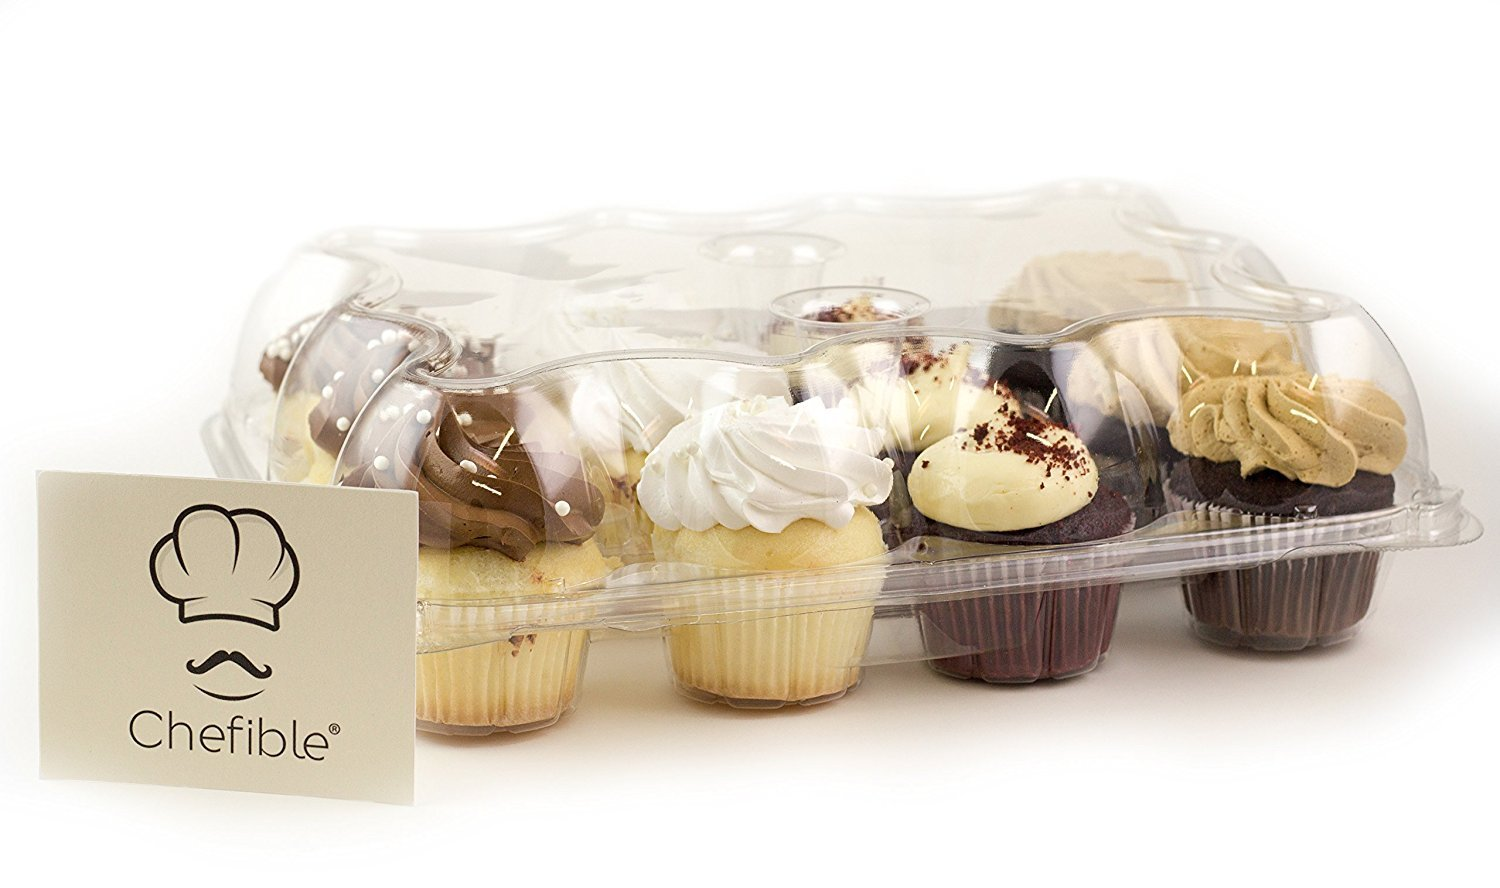 Chefible 12 Cupcake Container Cupcake Box High Dome - Set of 100 by Chefible®